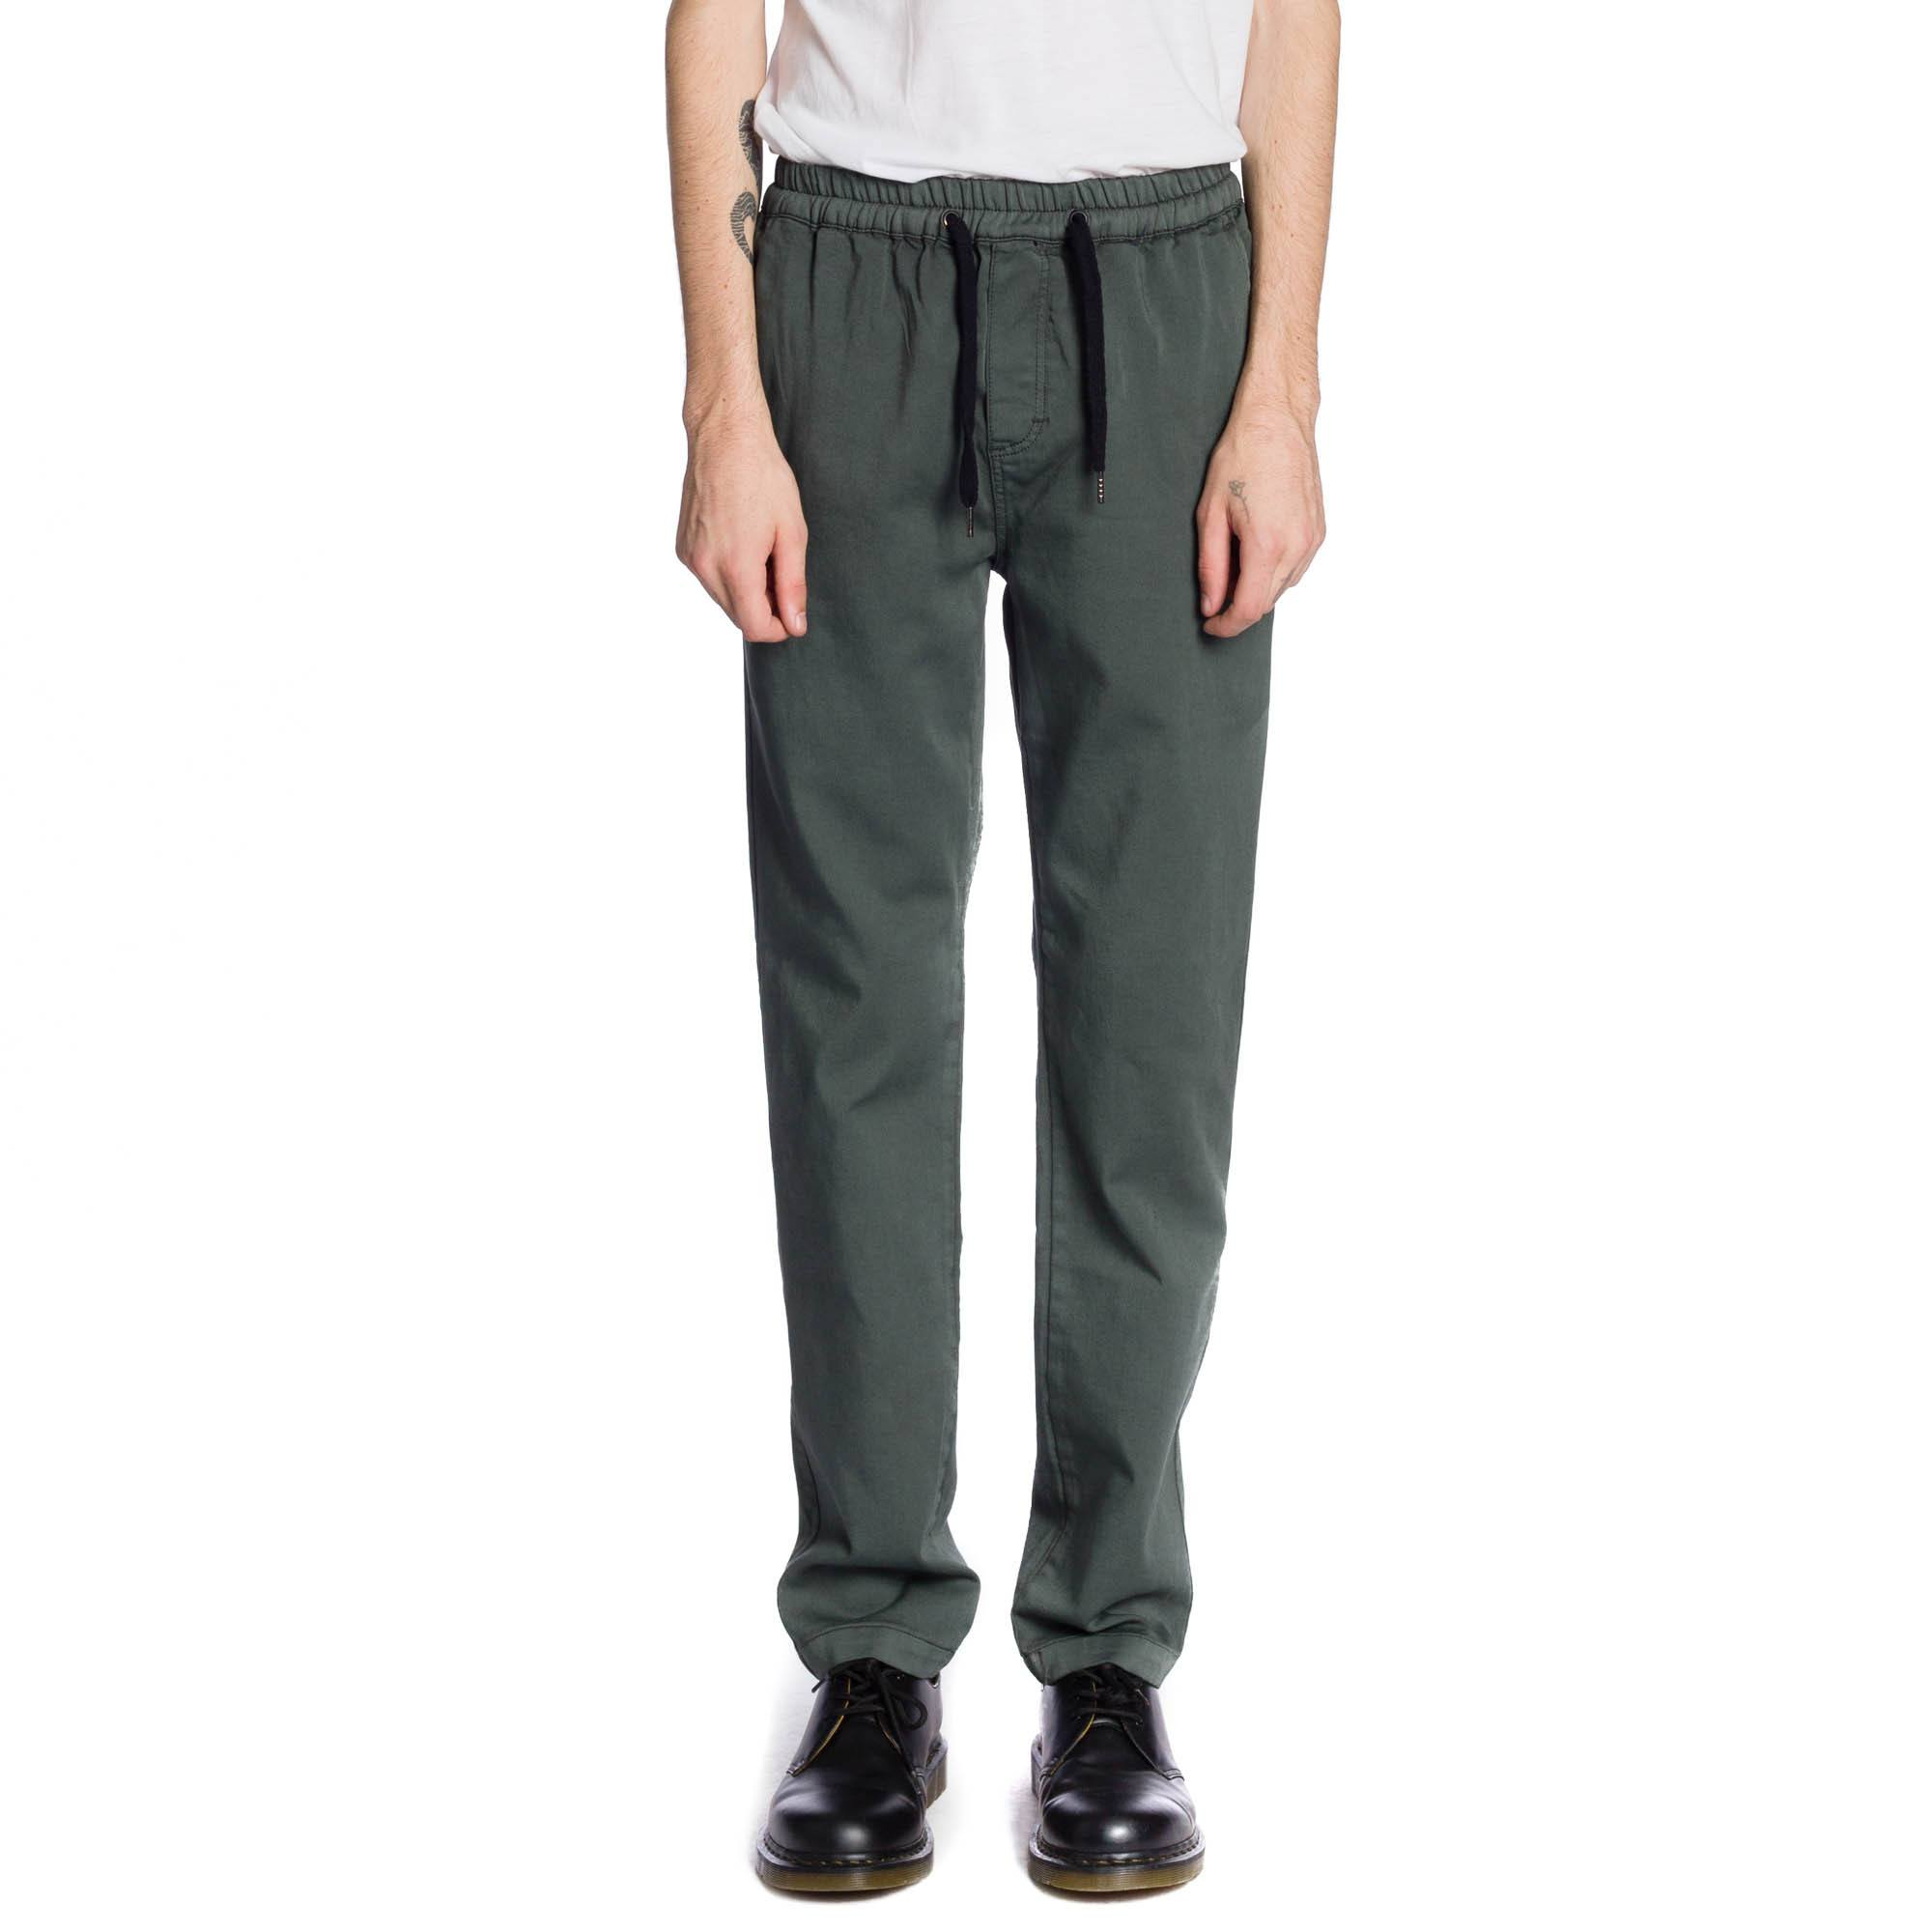 Boomerang Pant - Dark Grey